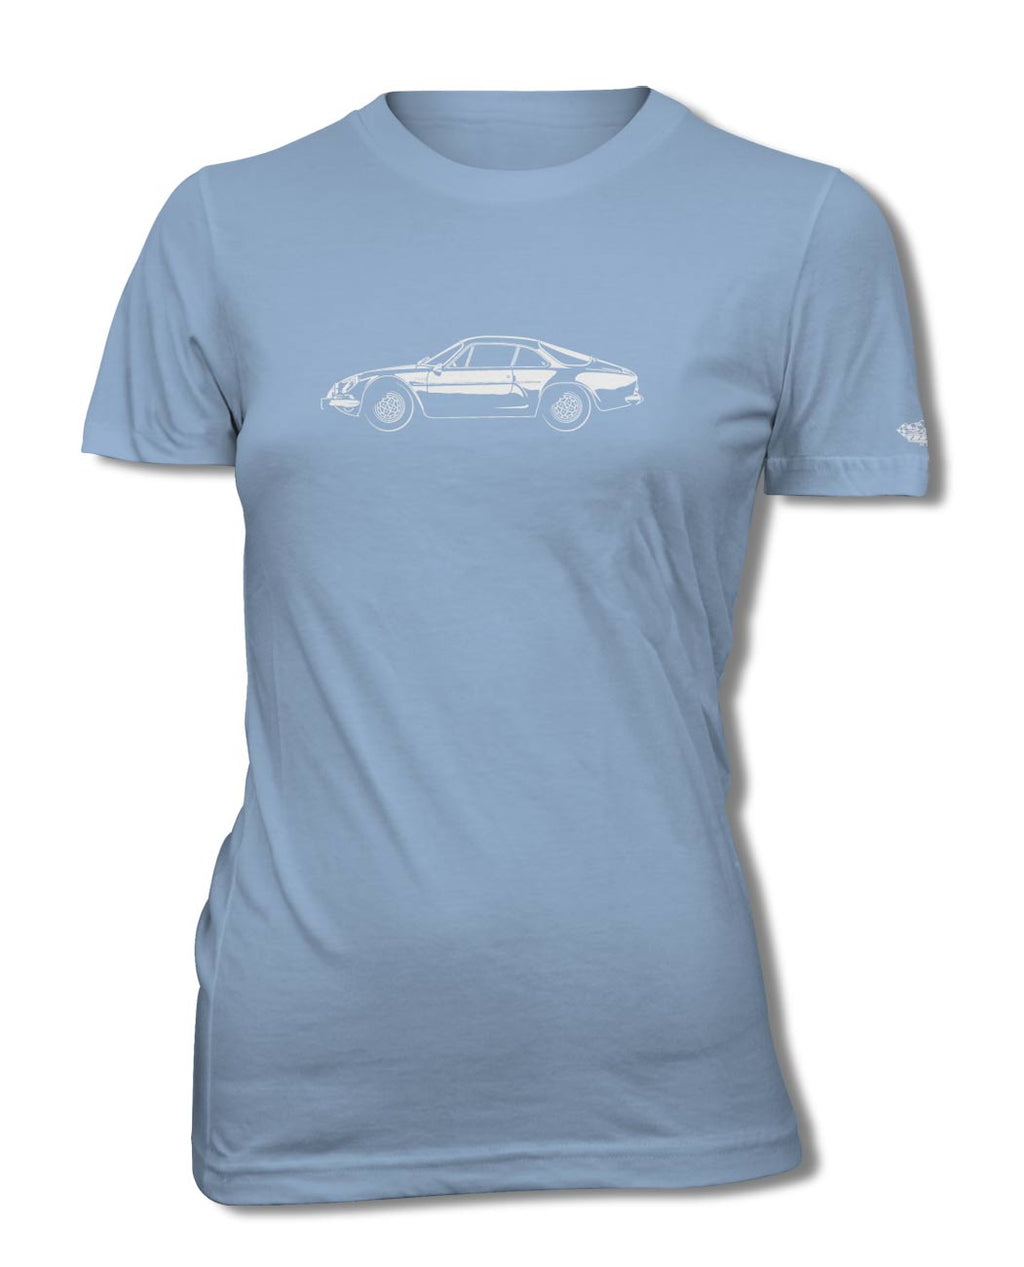 Alpine Renault A110 Berlinette T-Shirt - Women - Side View